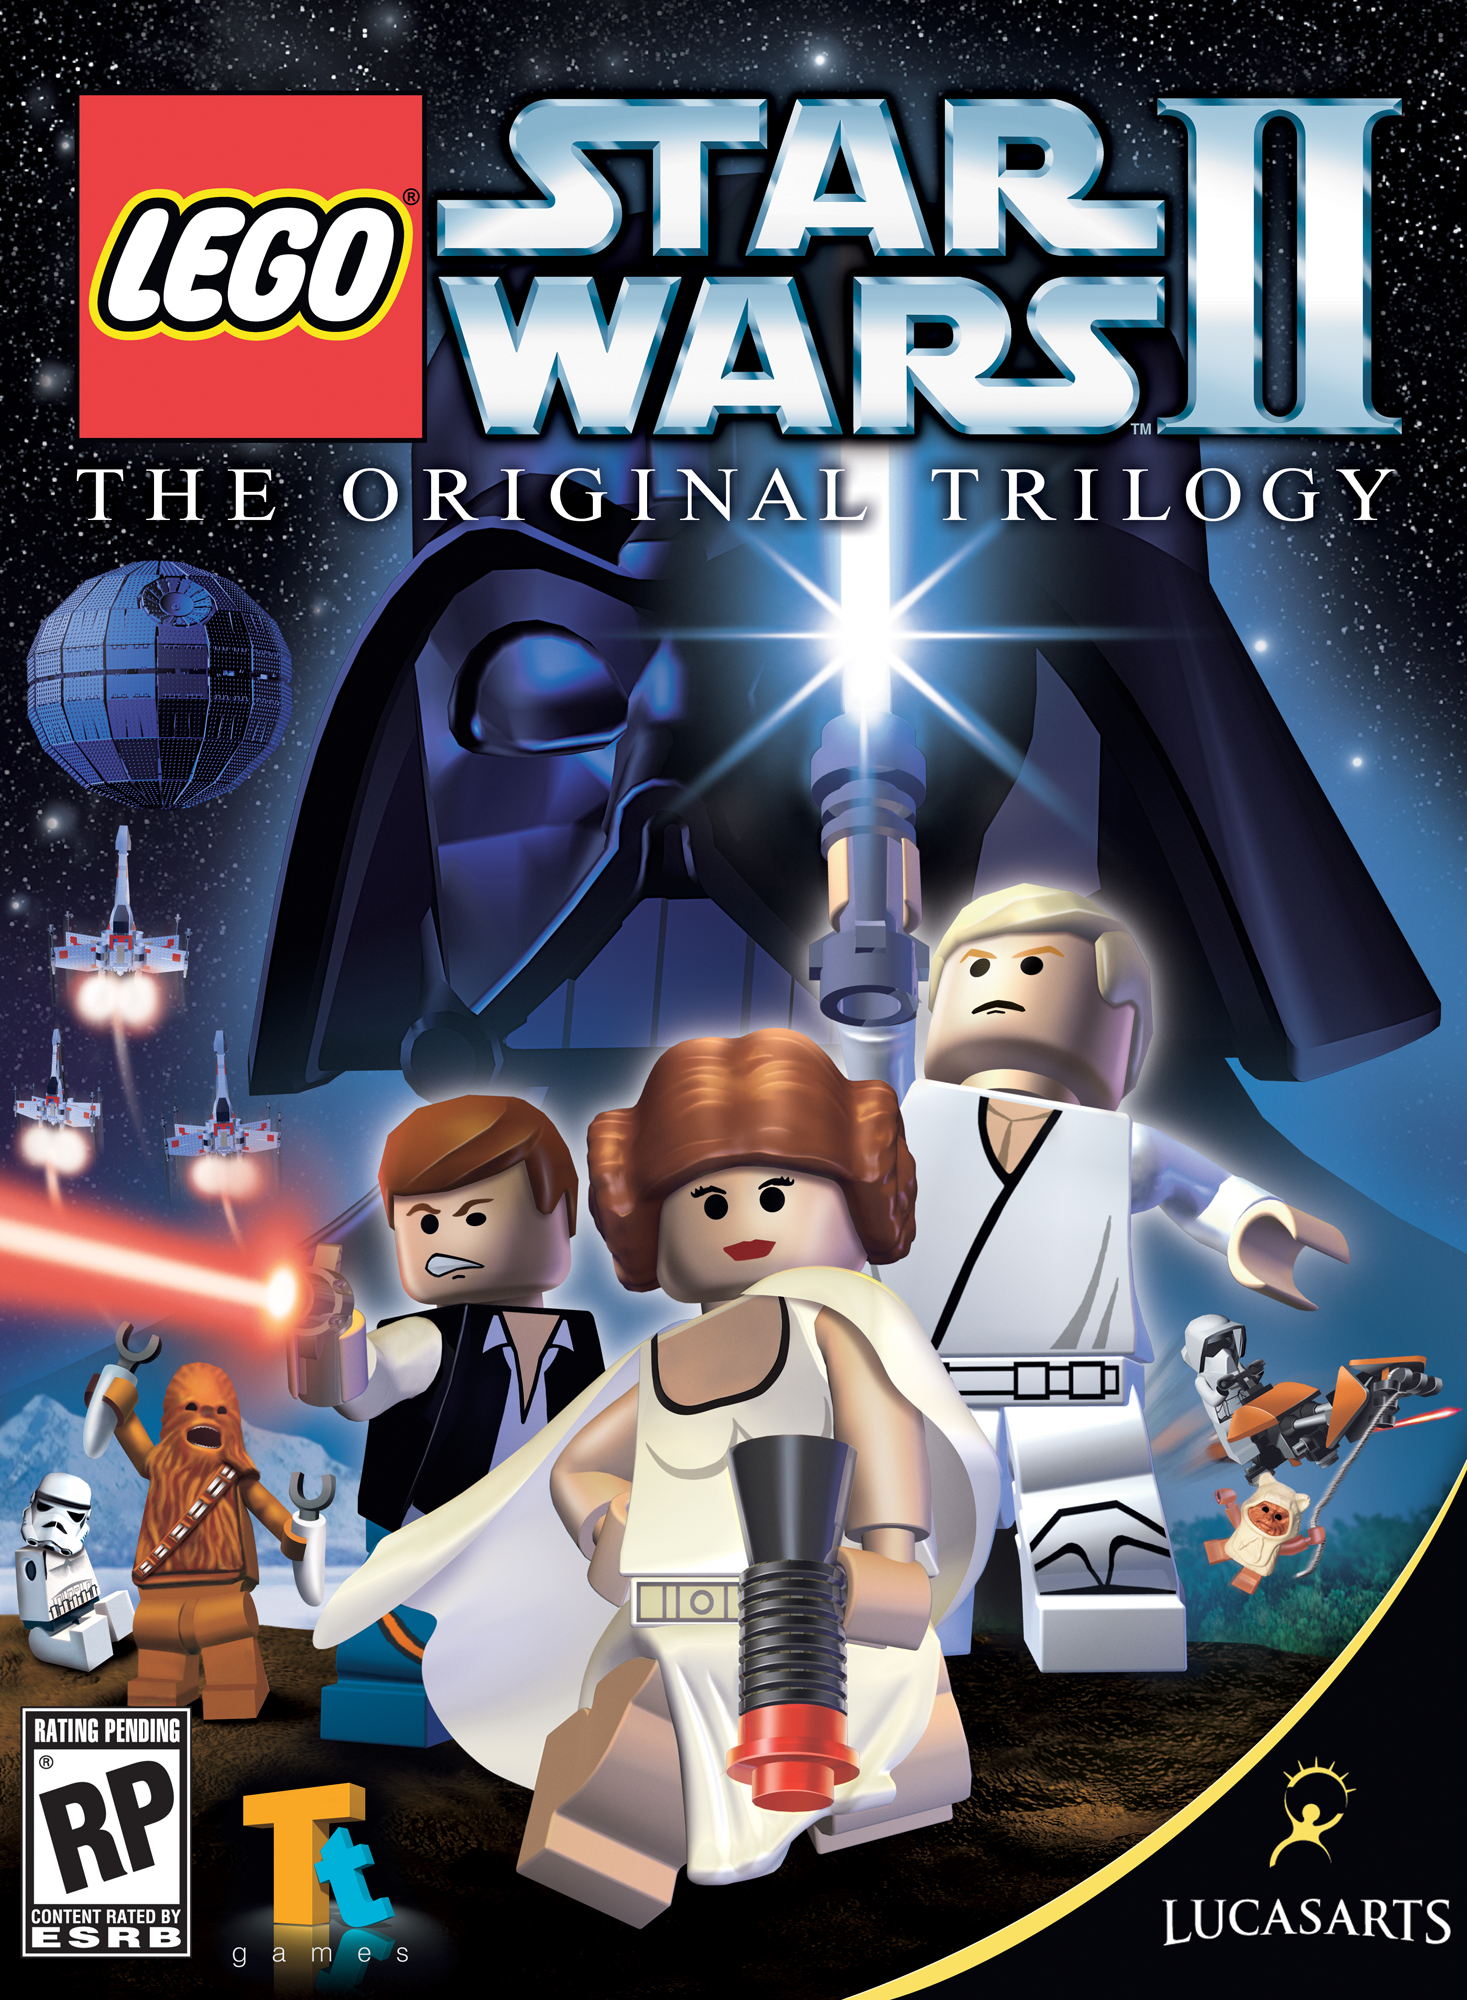 Lego Star Wars Ii The Original Trilogy Wallpapers Video Game Hq Lego Star Wars Ii The Original Trilogy Pictures 4k Wallpapers 2019